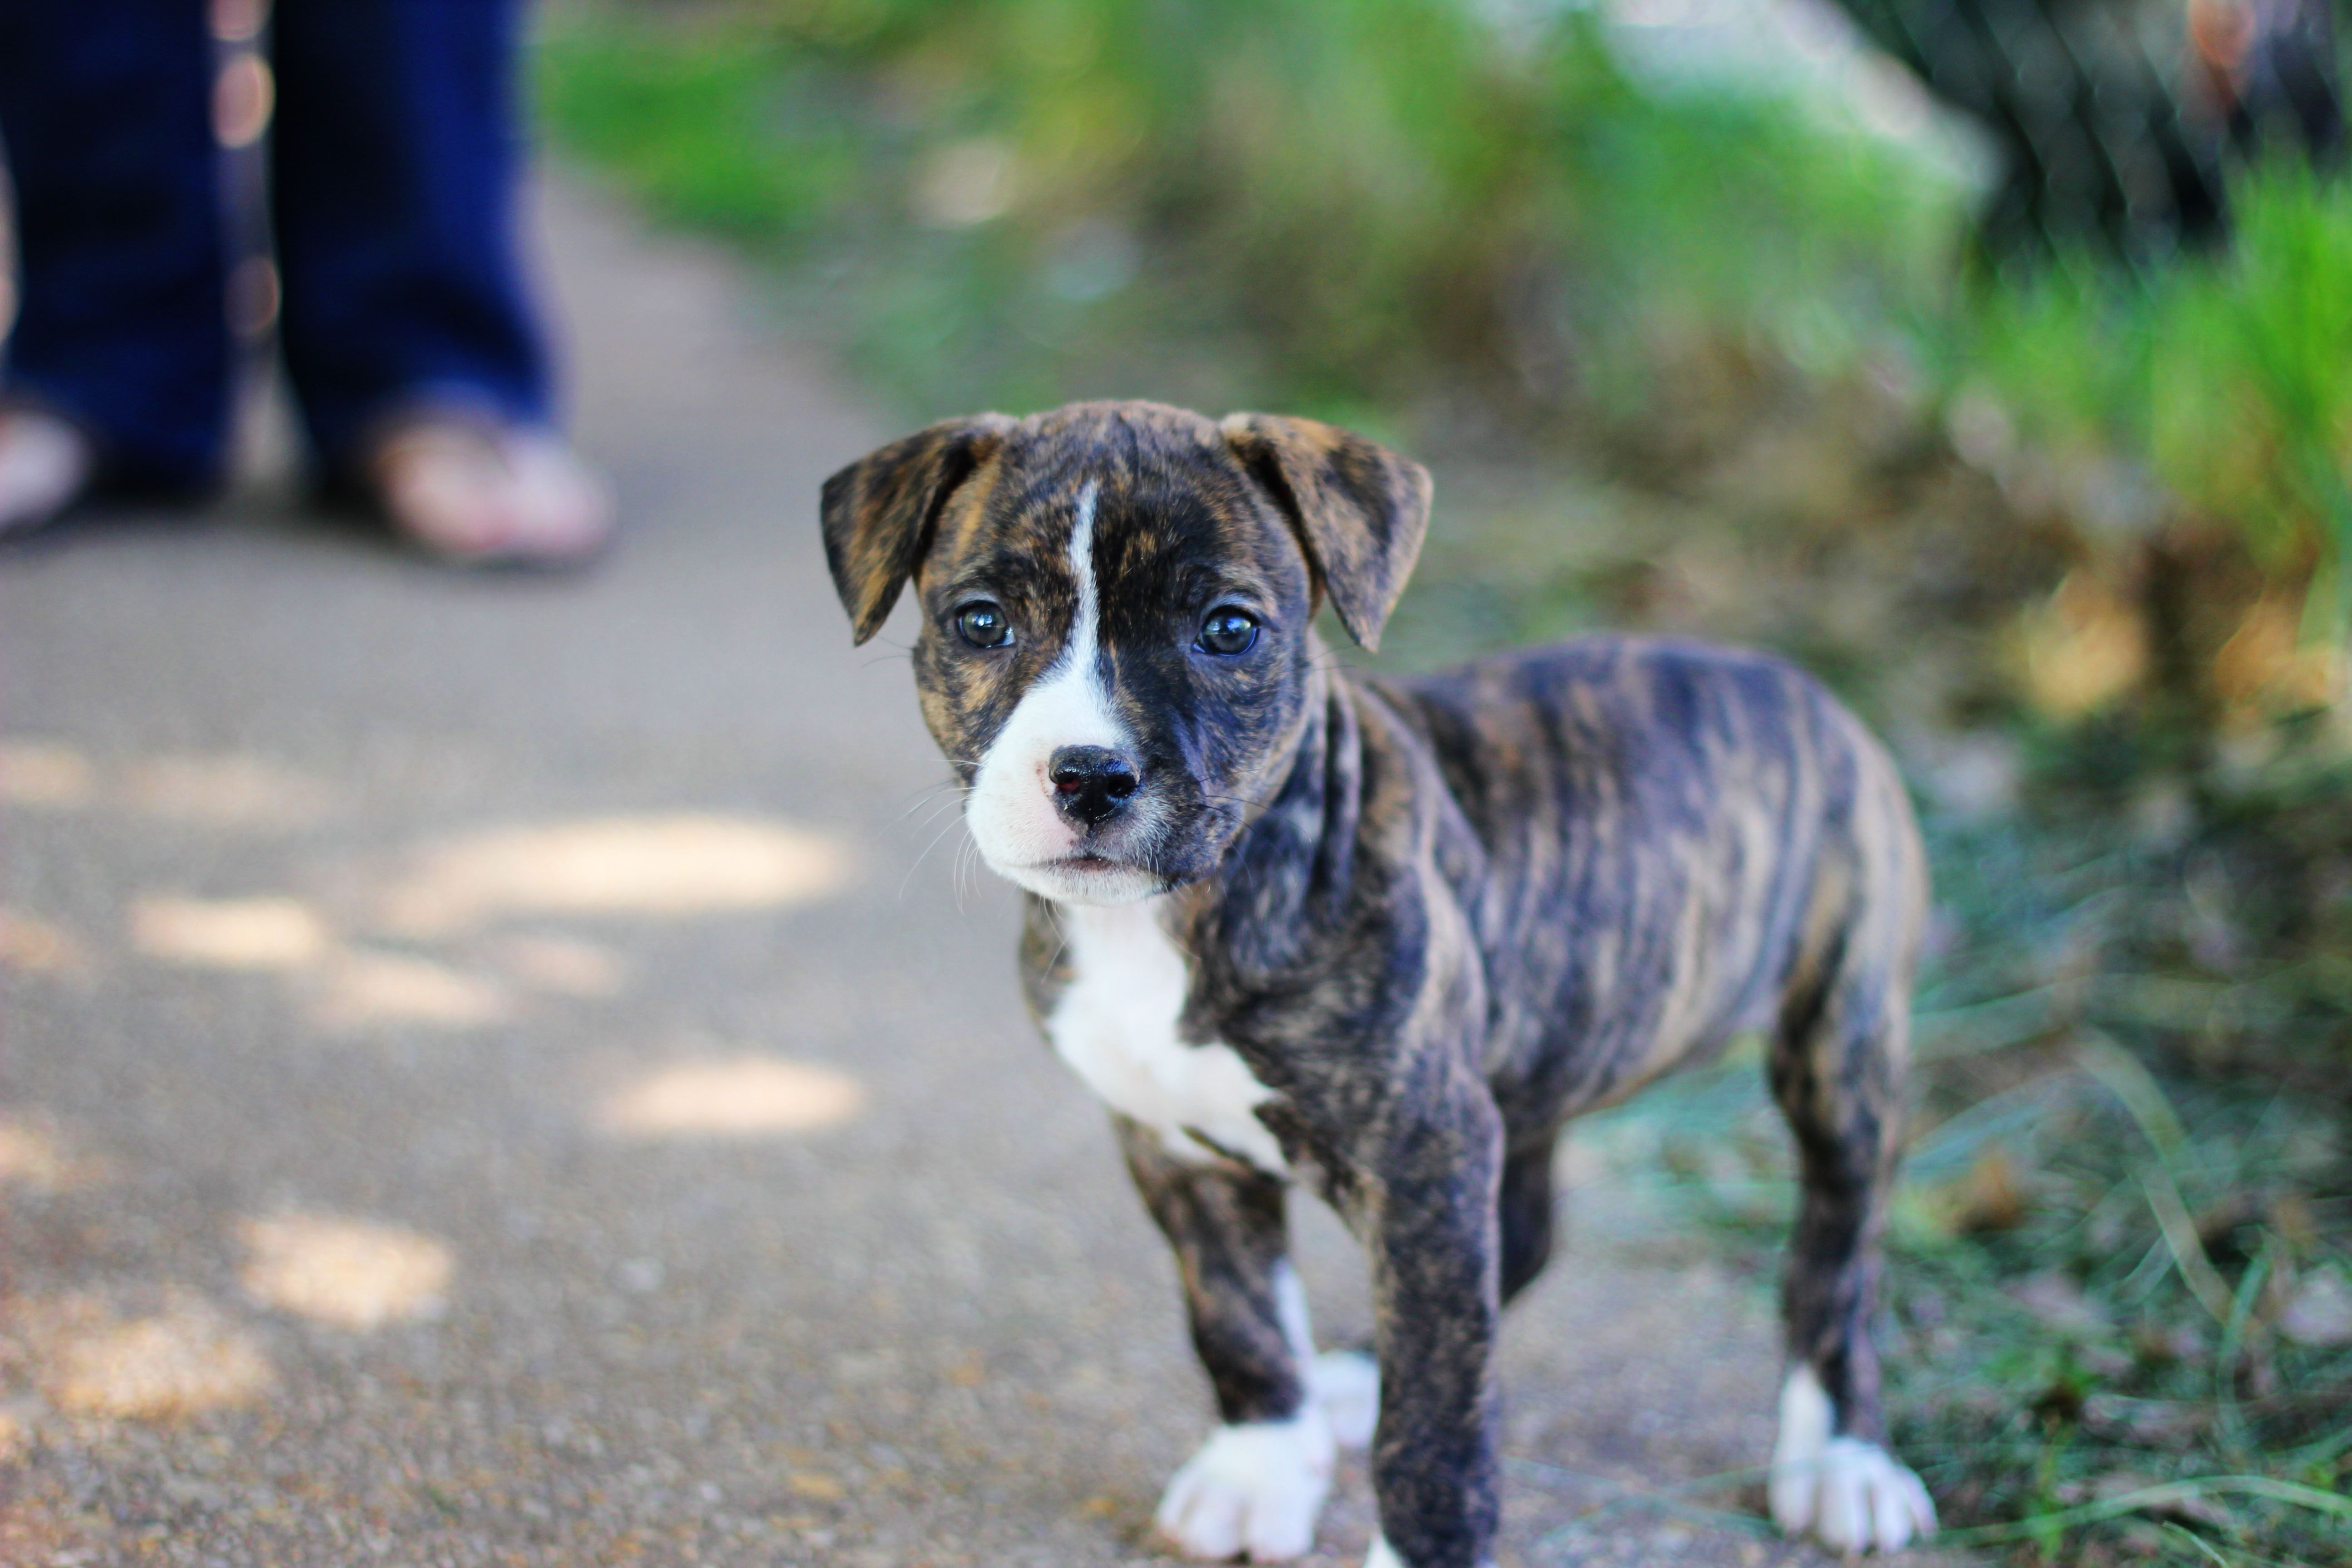 5184x3456 Pitbull Dog Puppy Wallpaper and Pictures Free | New ...